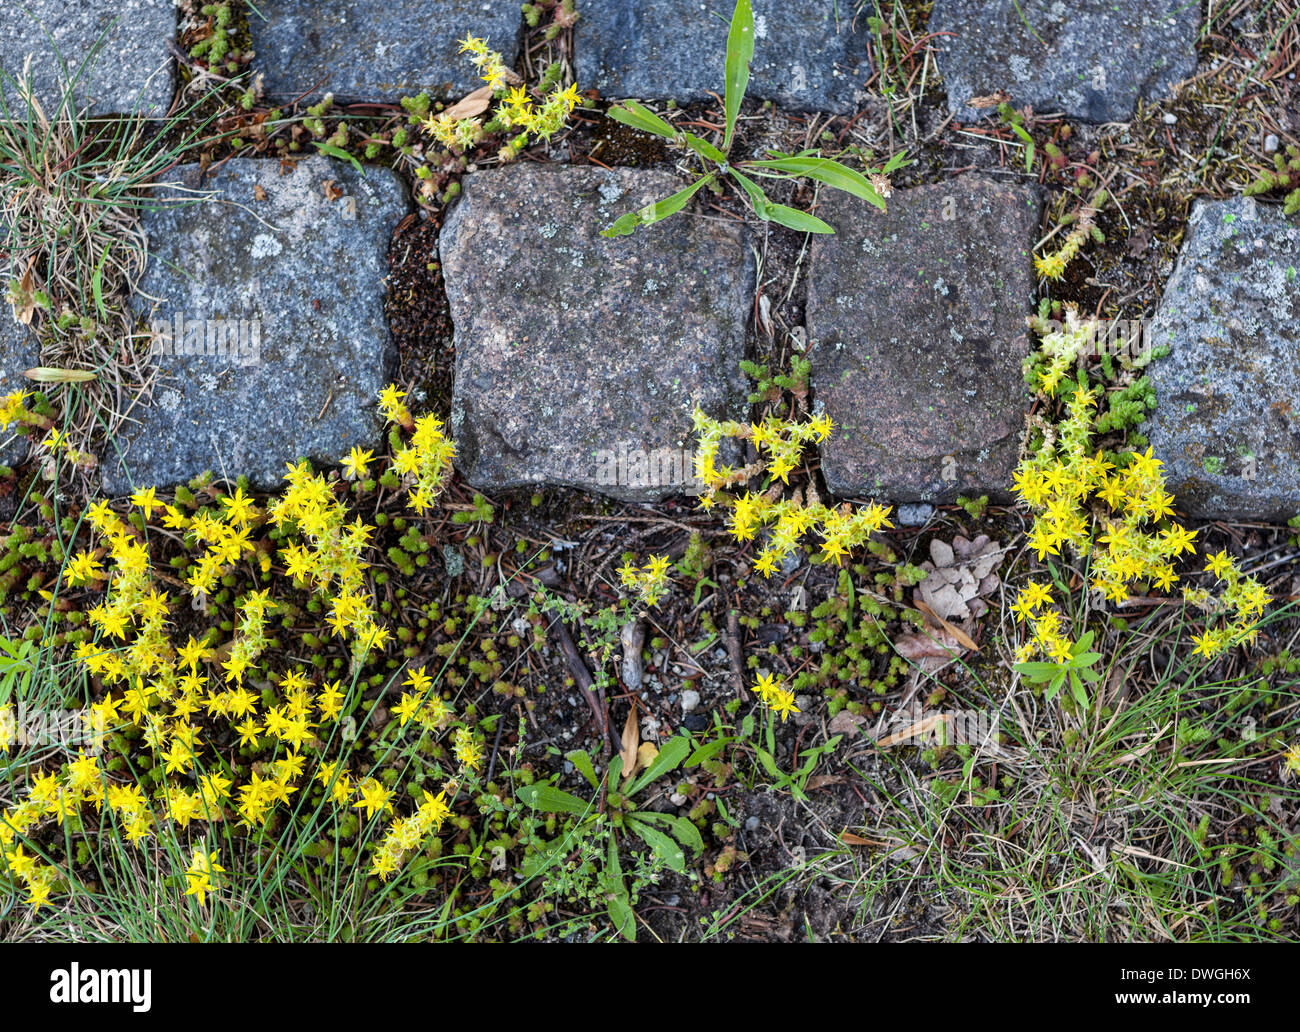 Weeds paving stock photos weeds paving stock images alamy weeds and tiny yellow star shaped wild flowers growing among stone paving setts stock image mightylinksfo